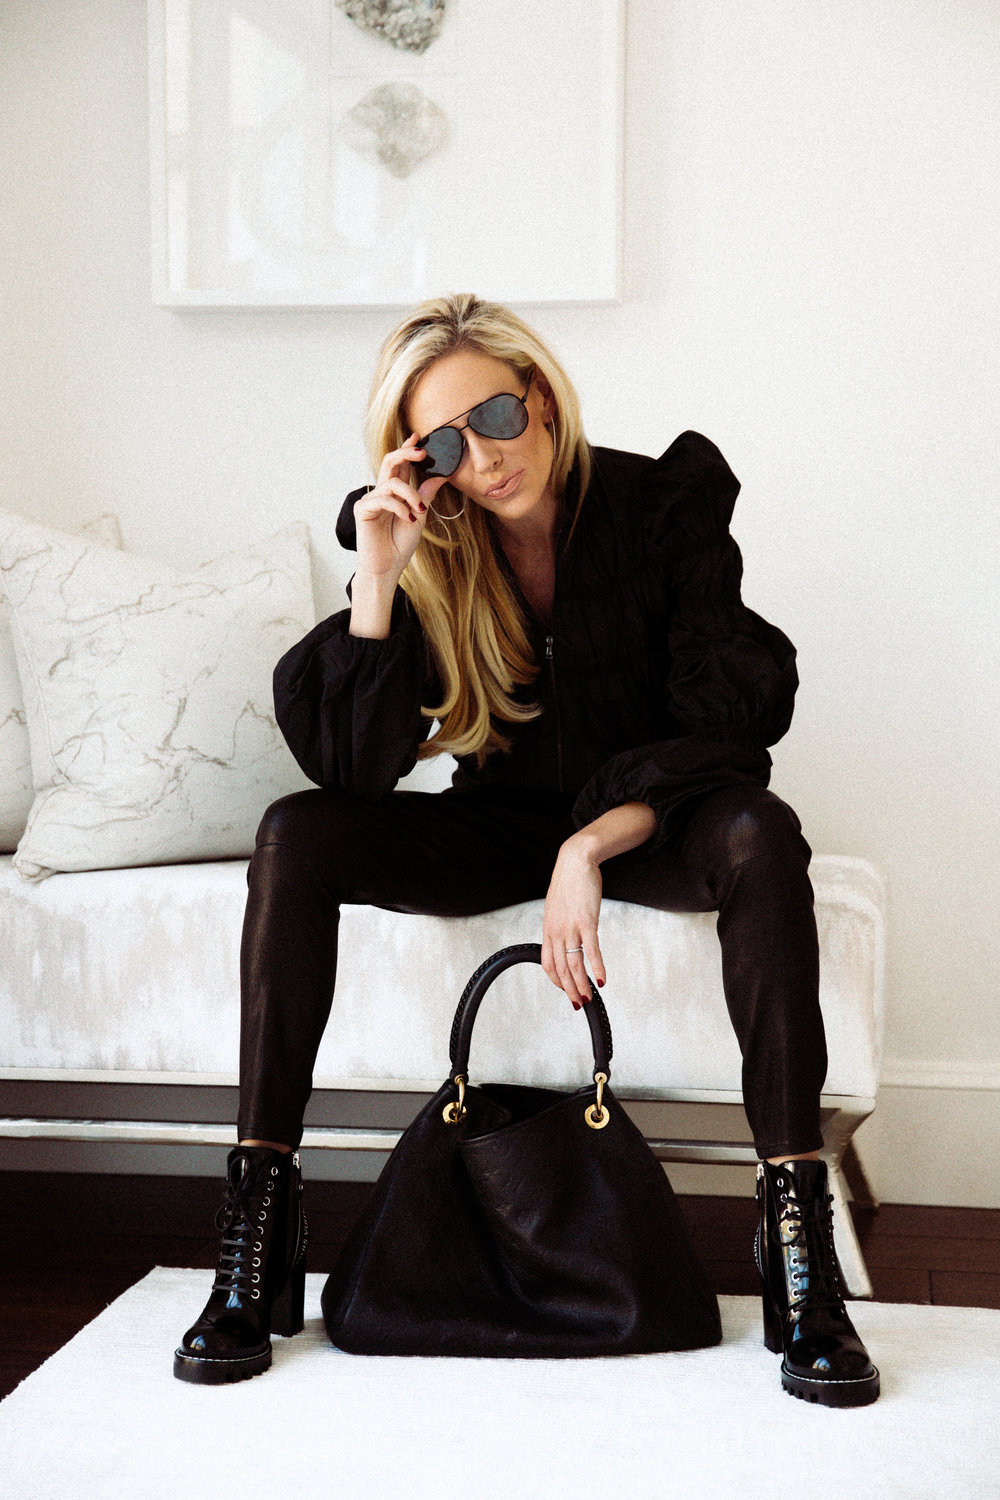 . Comfort zones can define us and our lives in ways we don't even recognize. For this conversation, let's narrow it down to your comfort zone with respect to your personal style...